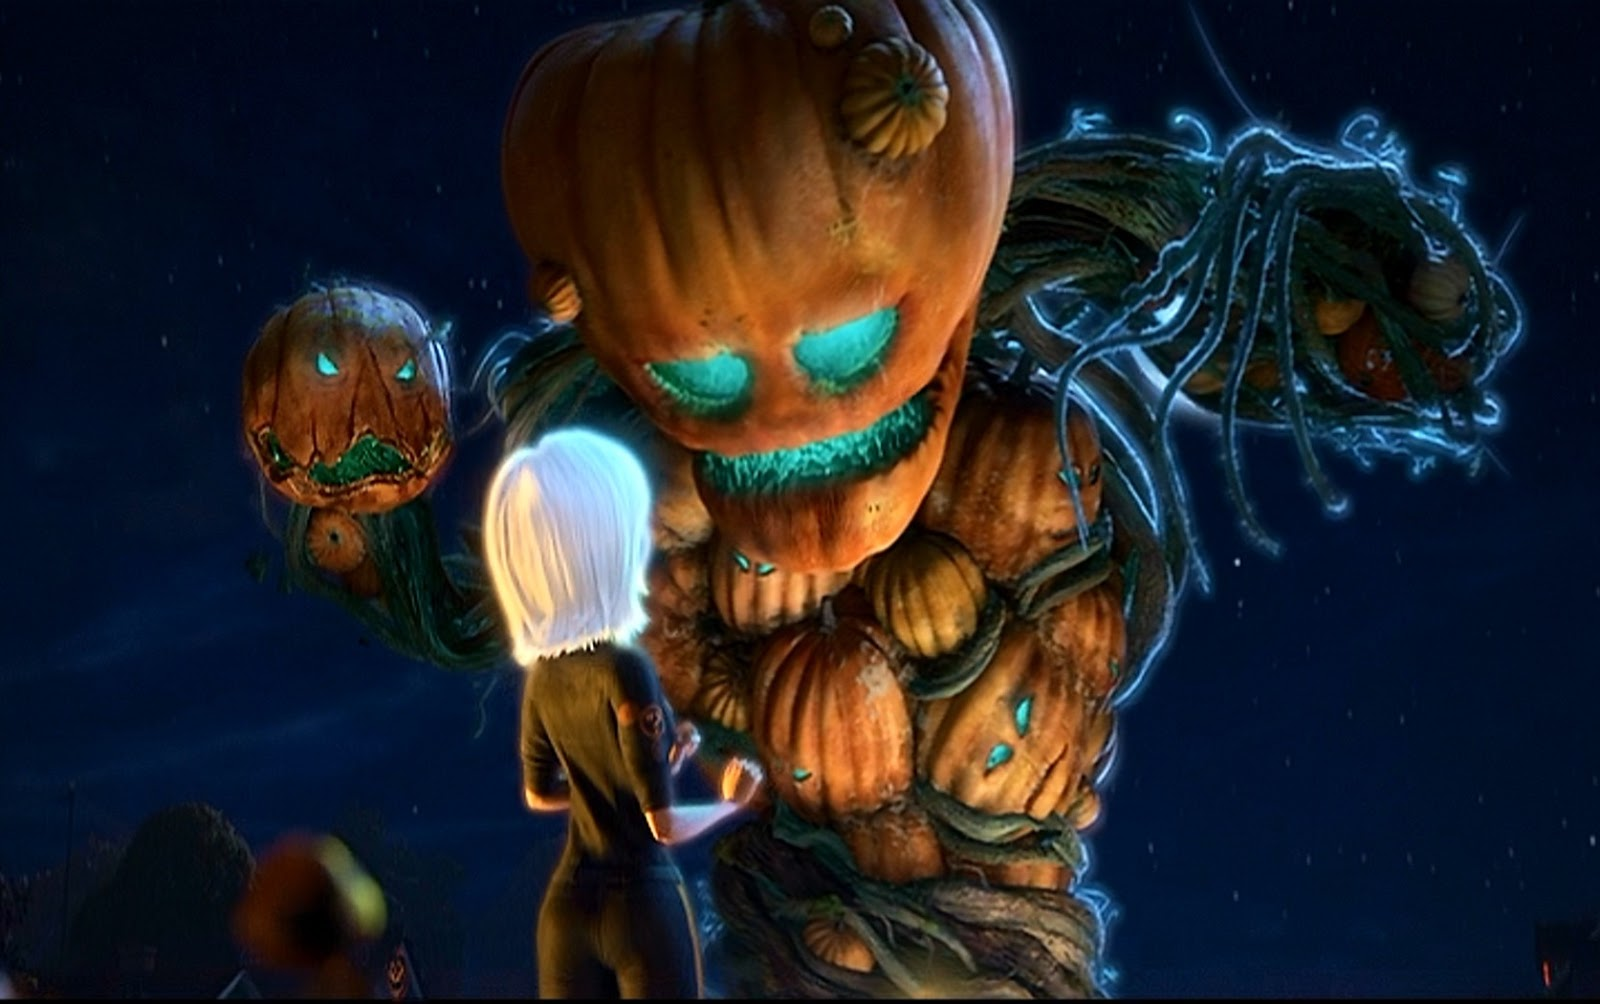 Pumpkins vs. Monsters